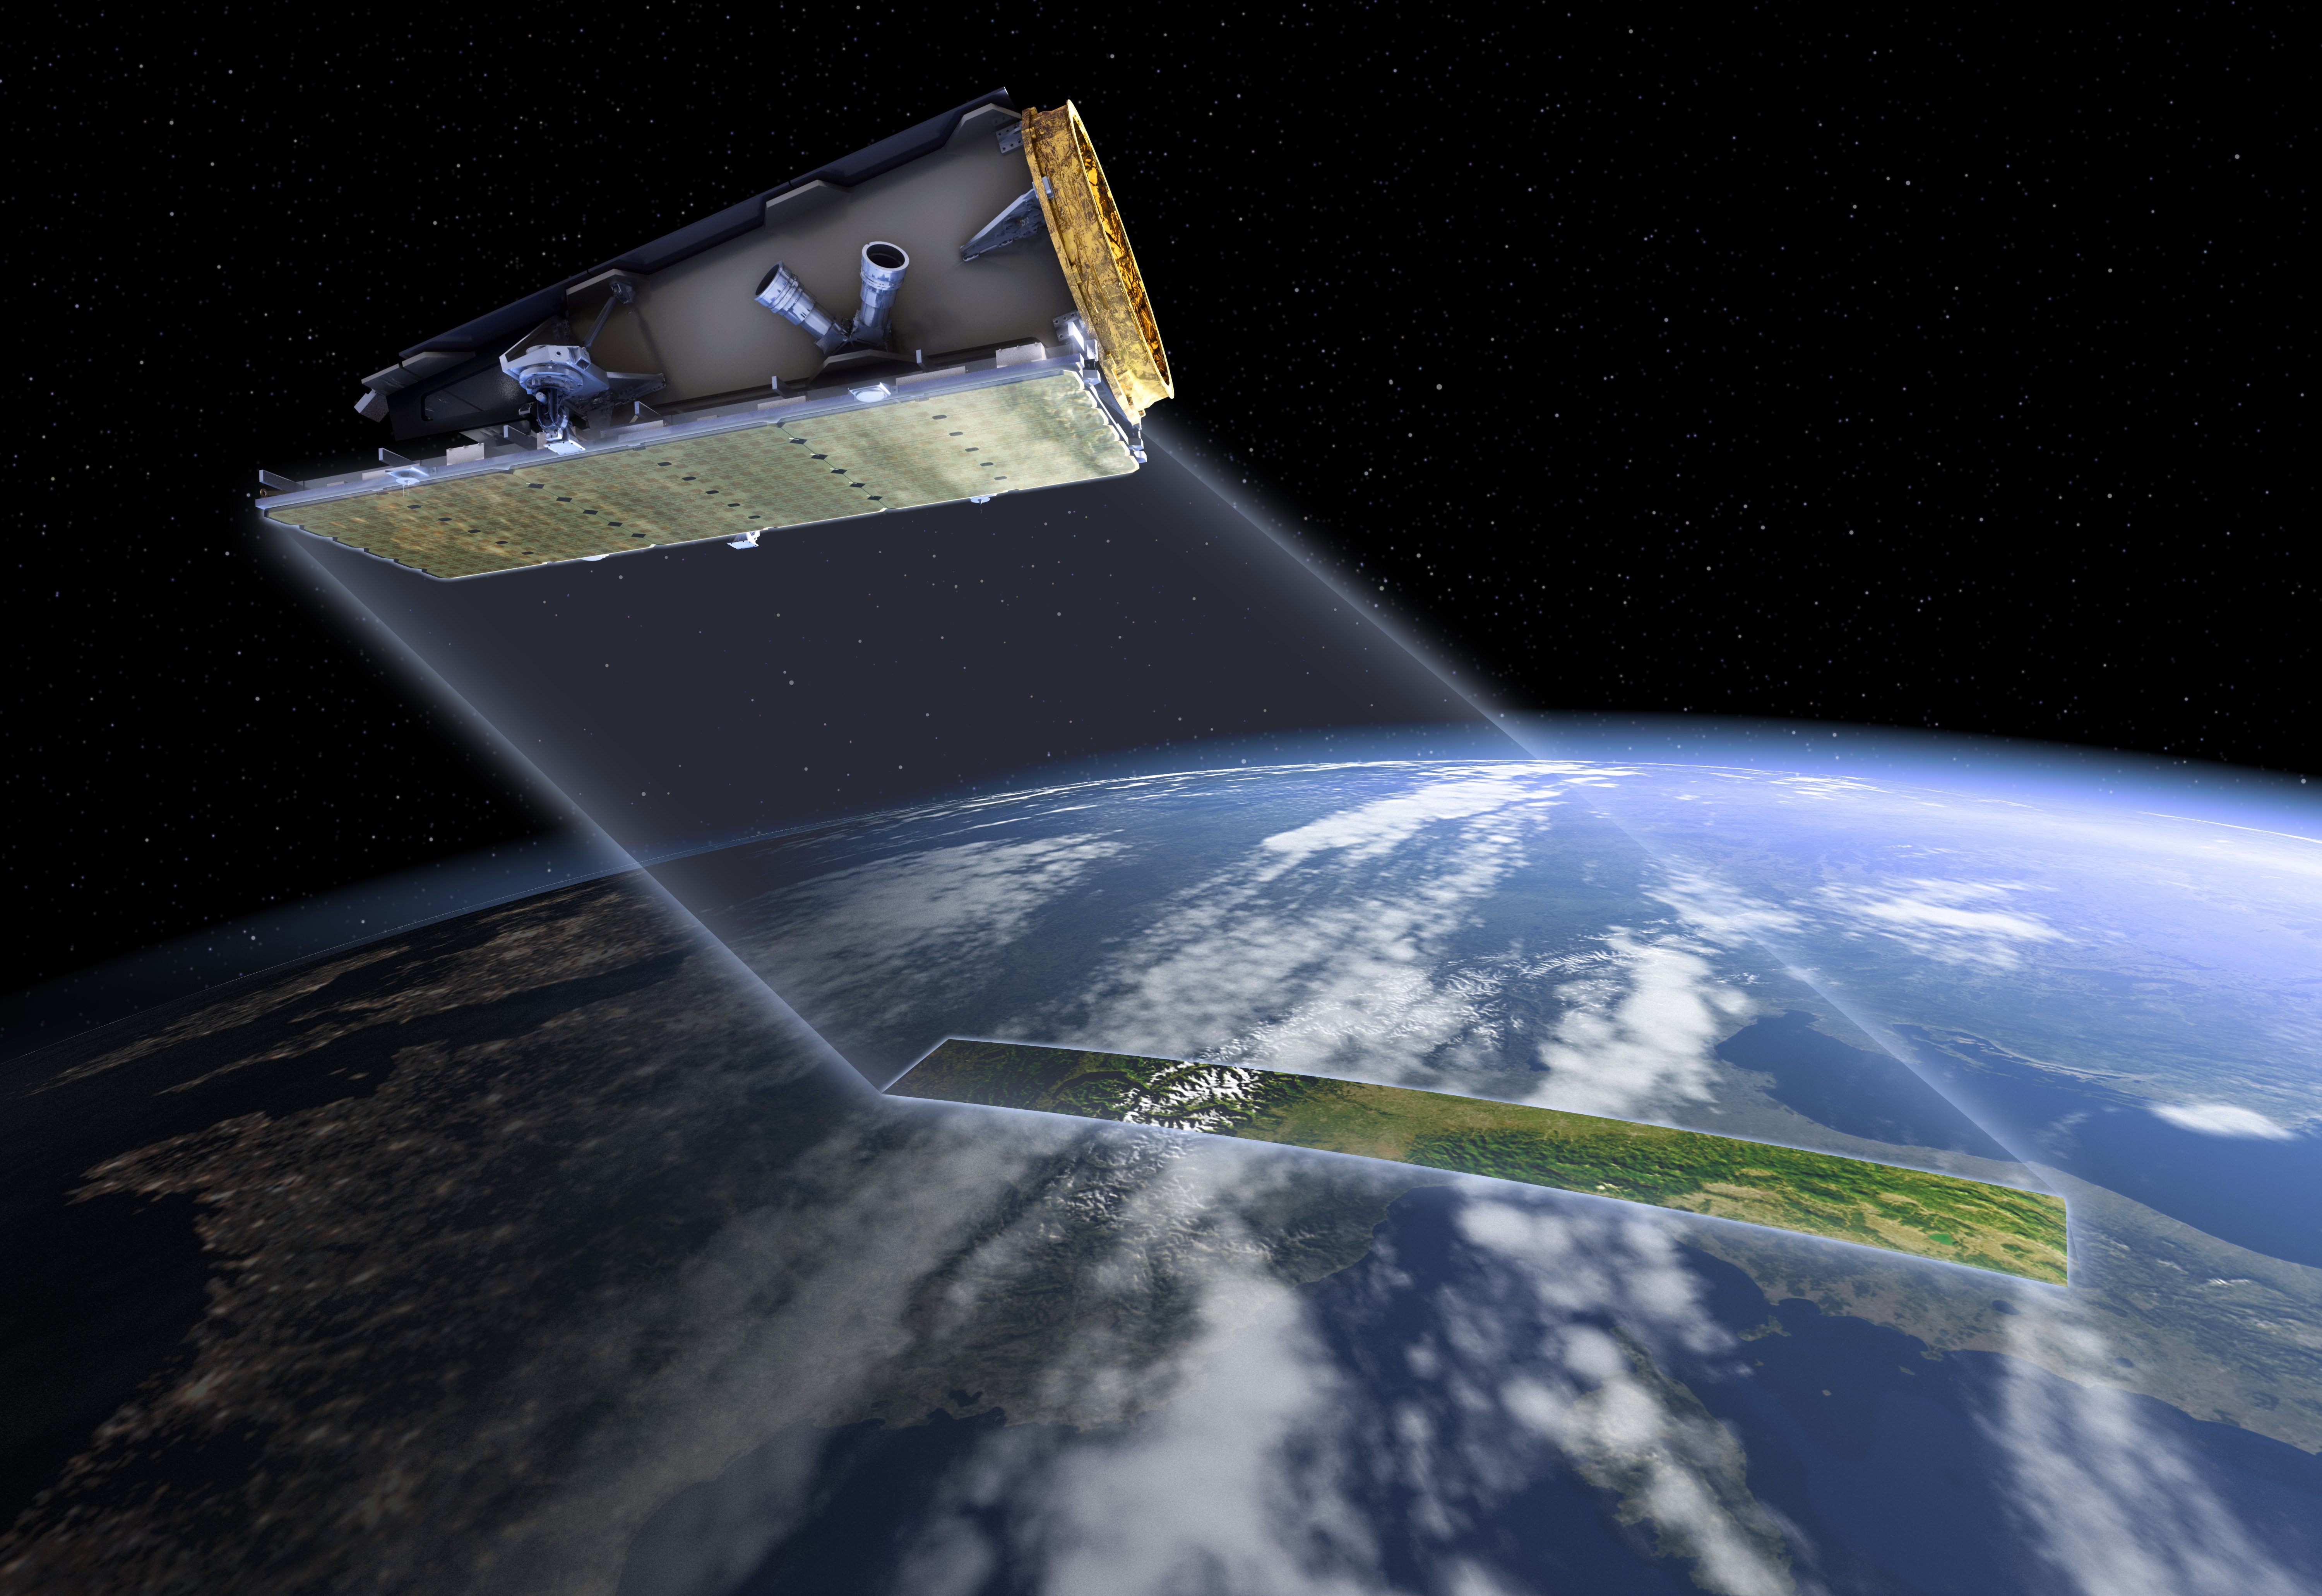 An artists impression of a satelitte in space above the curved surface of earth.